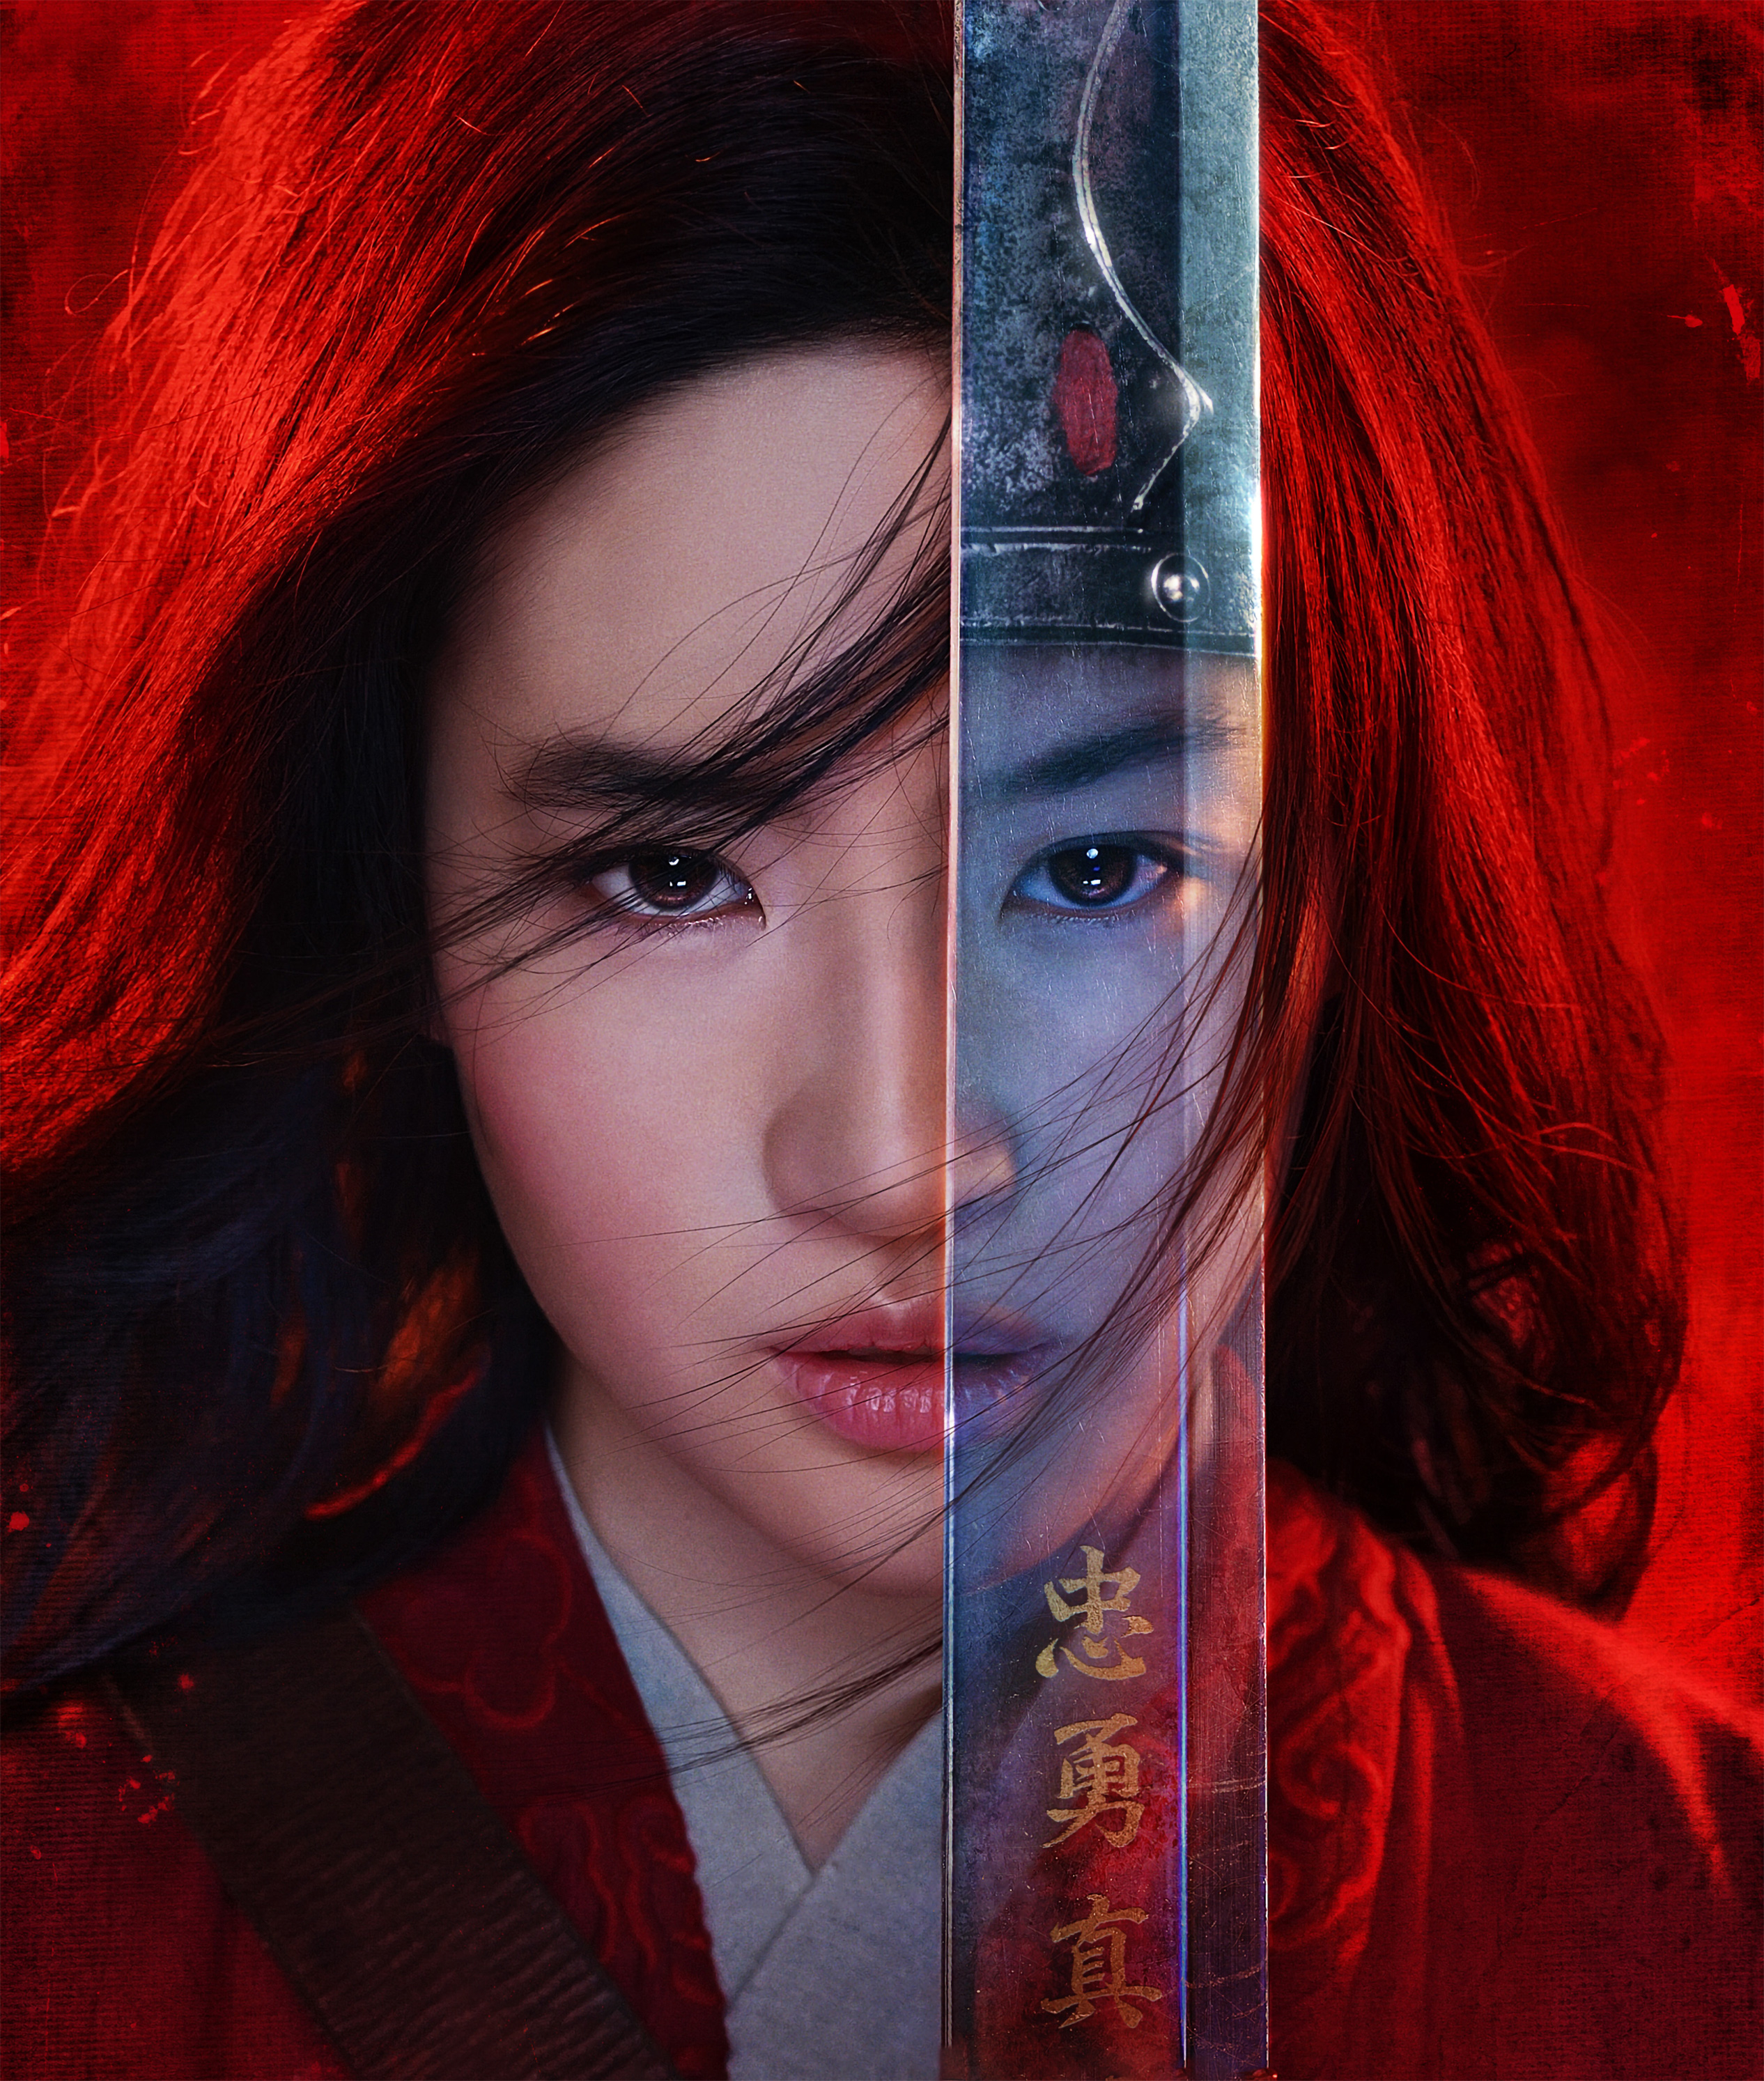 1080x2220 Mulan 2020 Movie Poster 1080x2220 Resolution Wallpaper, HD Movies  4K Wallpapers, Images, Photos and Background